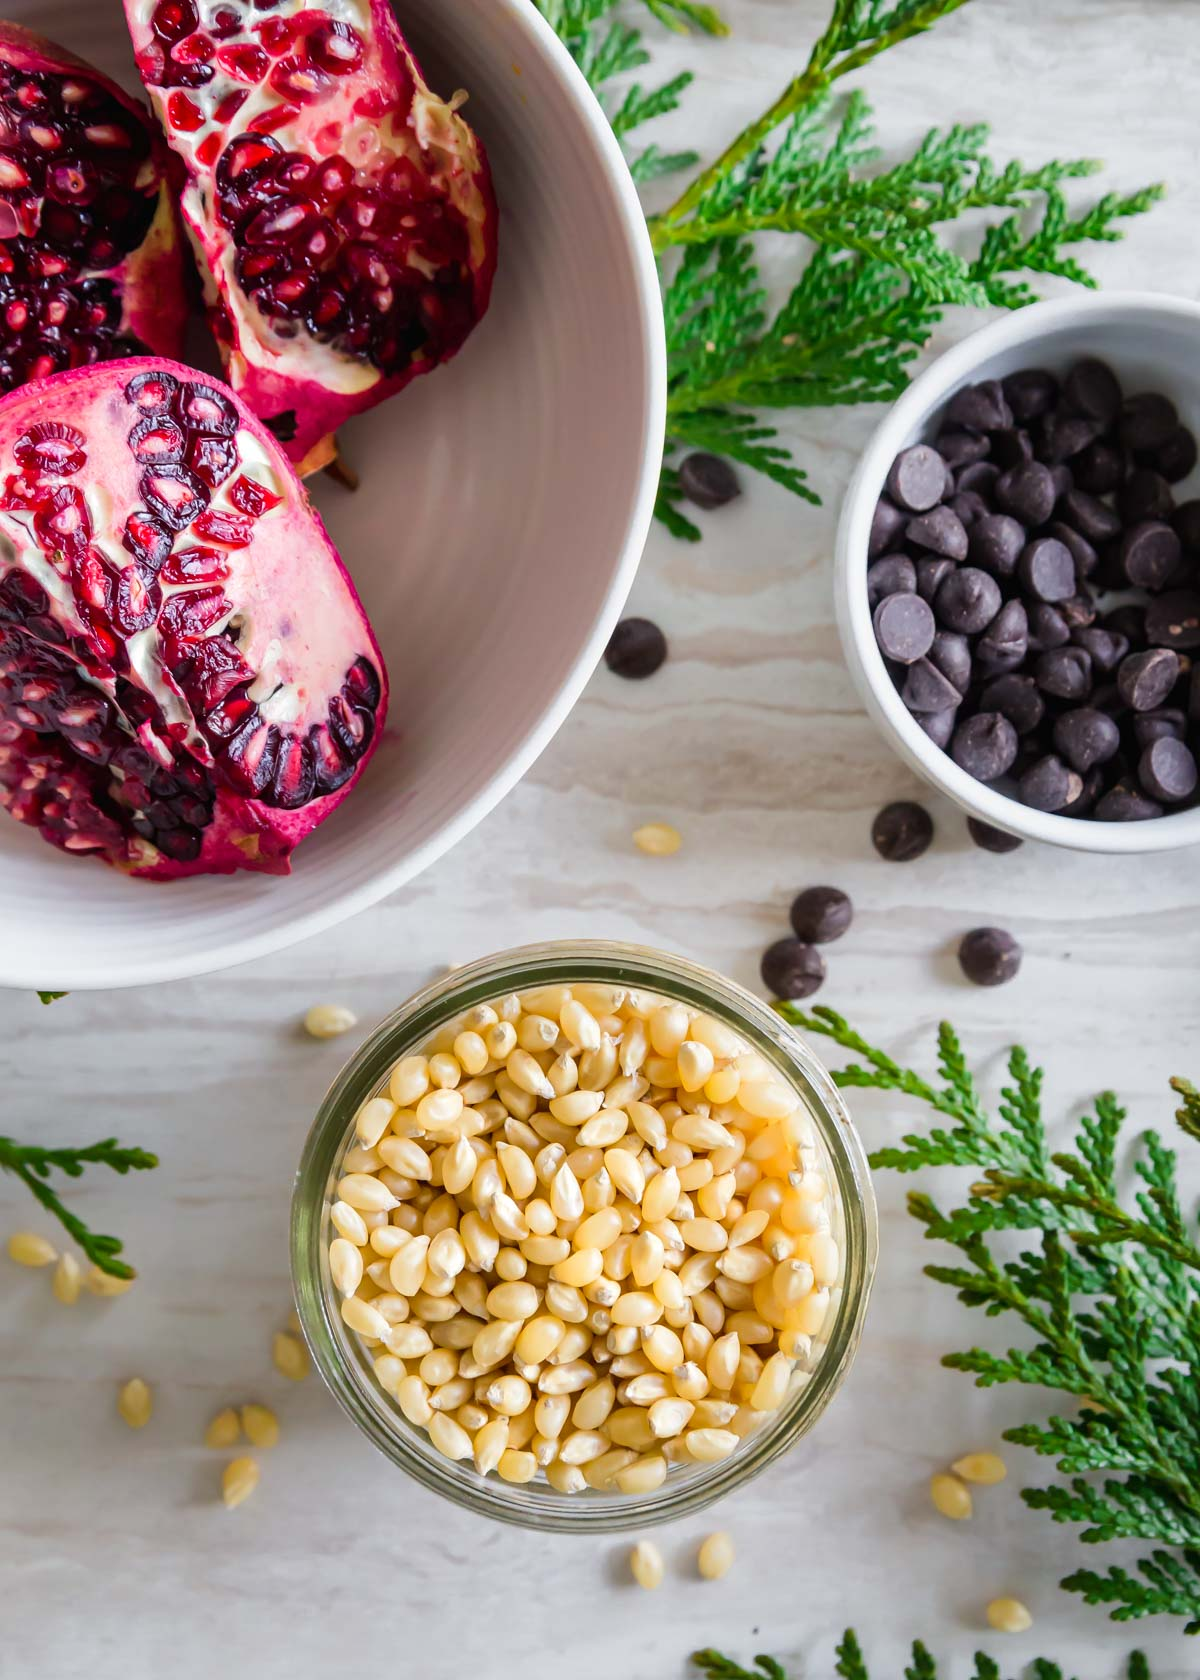 Ingredients to make pomegranate popcorn include popping corn kernels, pomegranate arils and dark chocolate chips.